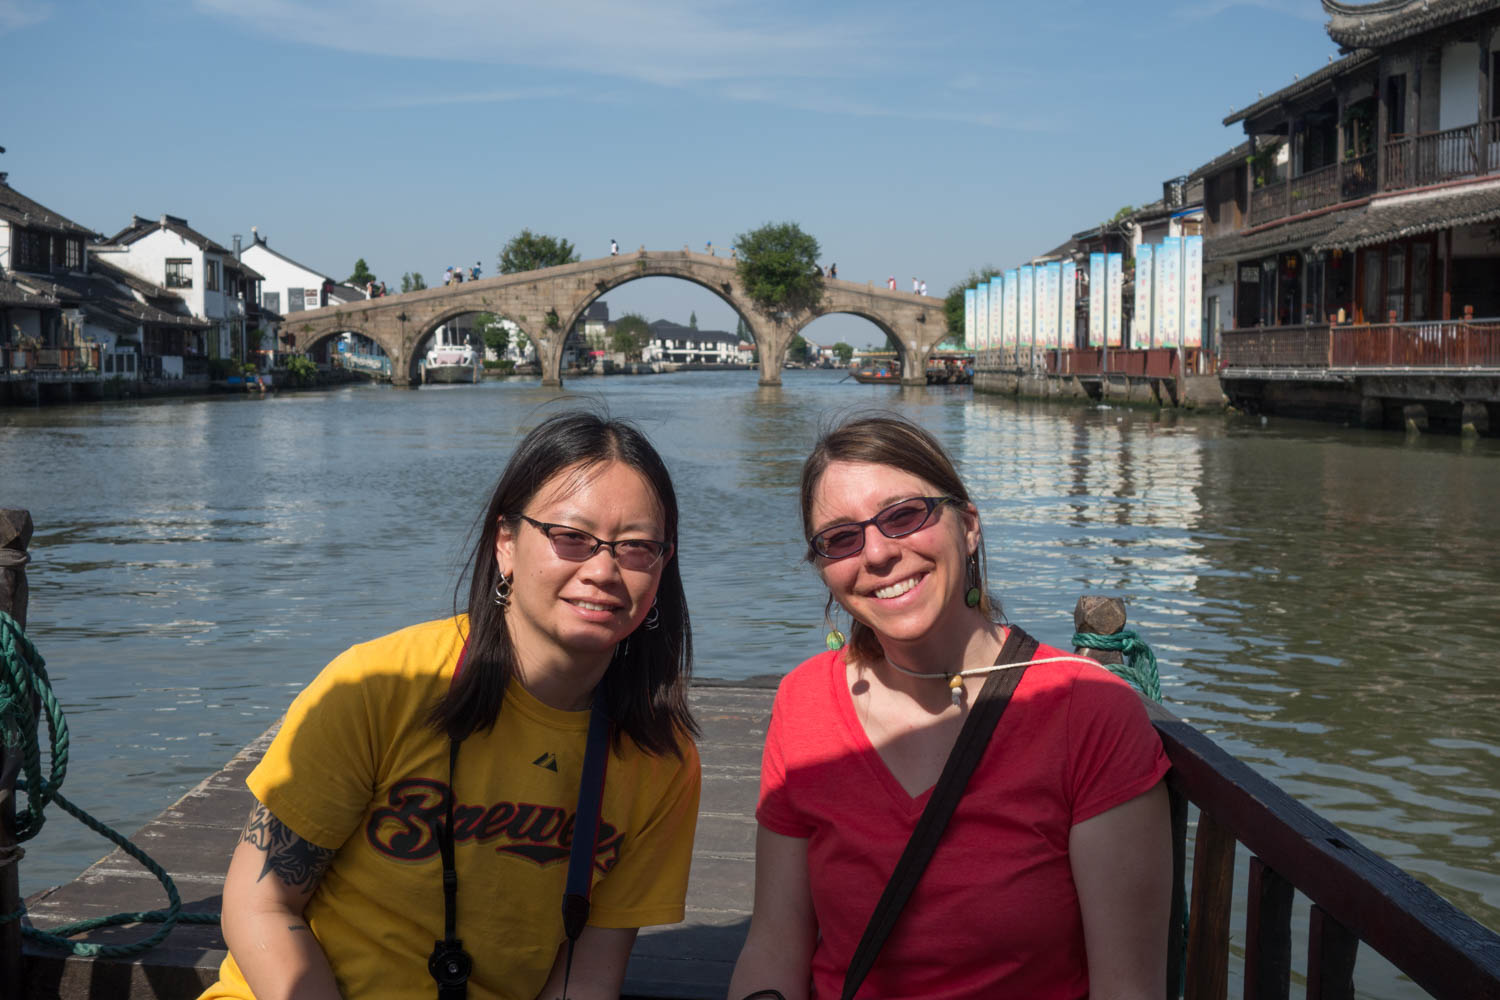 Laura and Sarah on the boat with Fangsheng bridge in the background